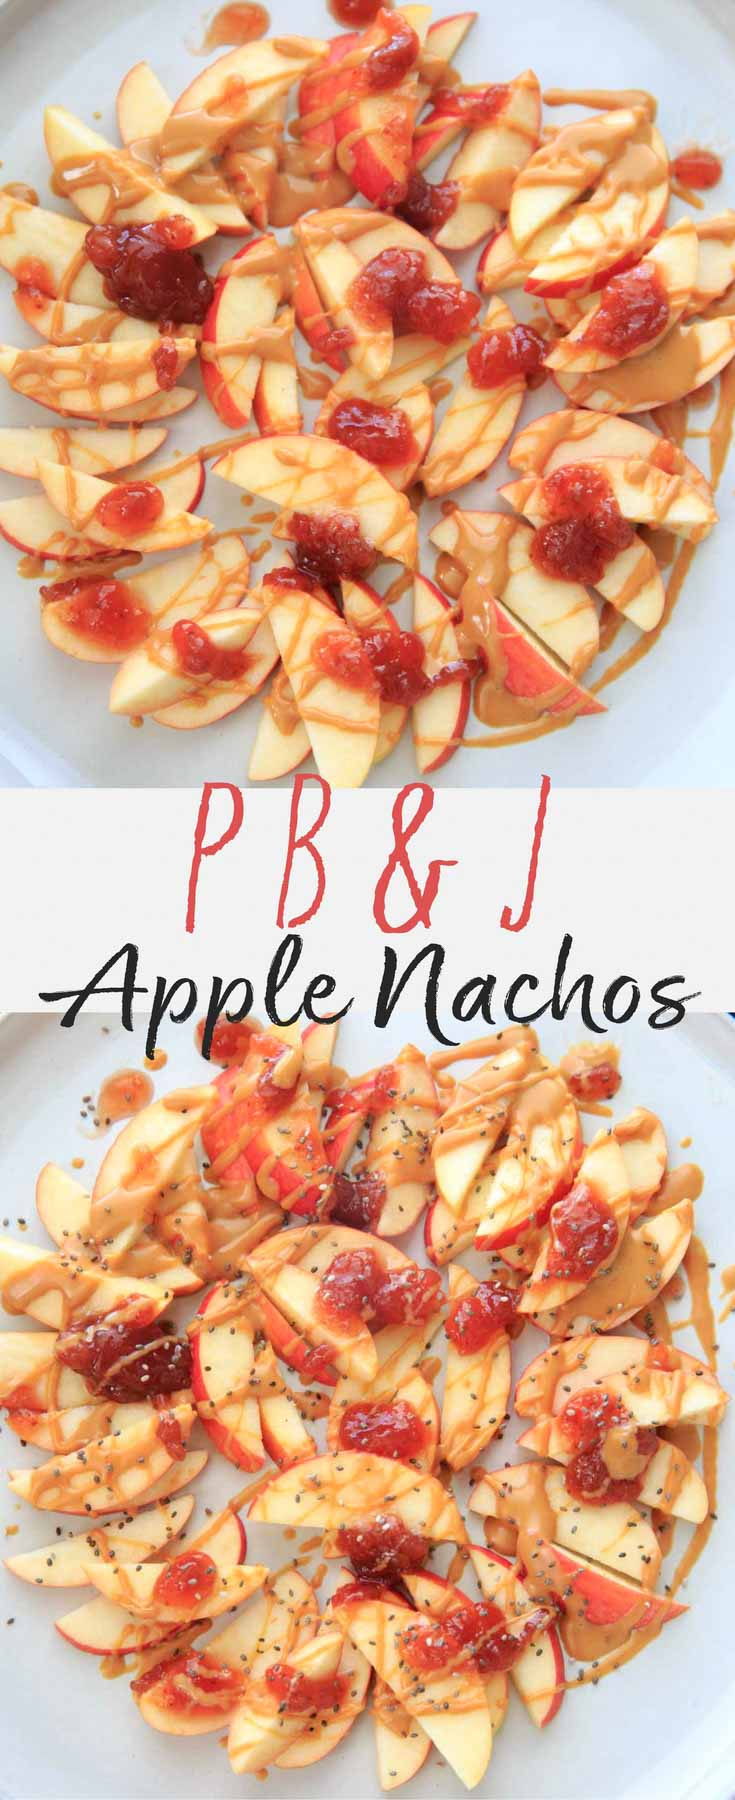 This peanut butter jelly combo on apple nachos is the perfect quick and healthy snack for kids and adults alike! Vegan, gluten-free, protein-packed, no-bake delicious treat.